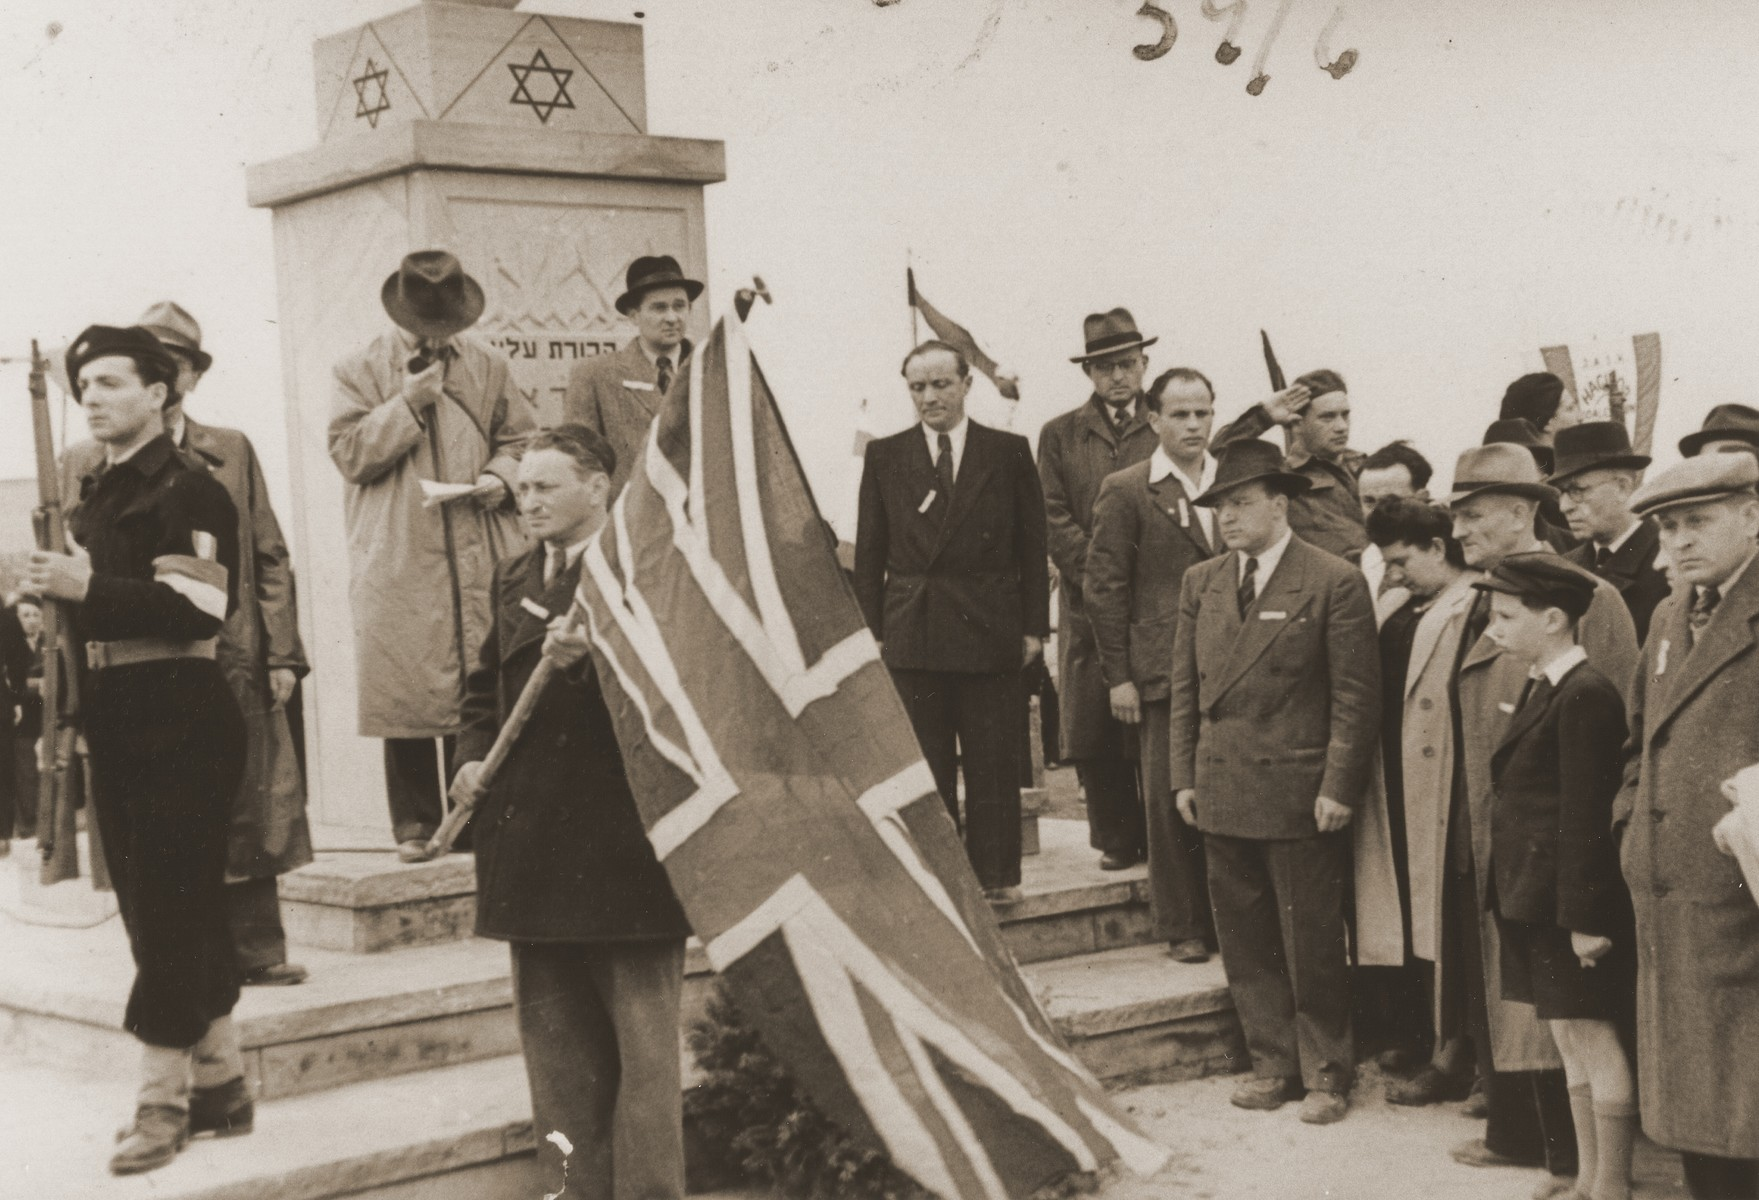 Jewish DPs take part in a public ceremony at the dedication of the Bergen-Belsen memorial.  Pictured in front of the pillar on the right are Paul Trepman and Raphael Olewski.  At the right are Josef Rosensaft, Shmayahu Bloch, Norbert Wollheim, Hadassah Bimko, Simcha Winik (saluting) and Shmuel Weintraub.